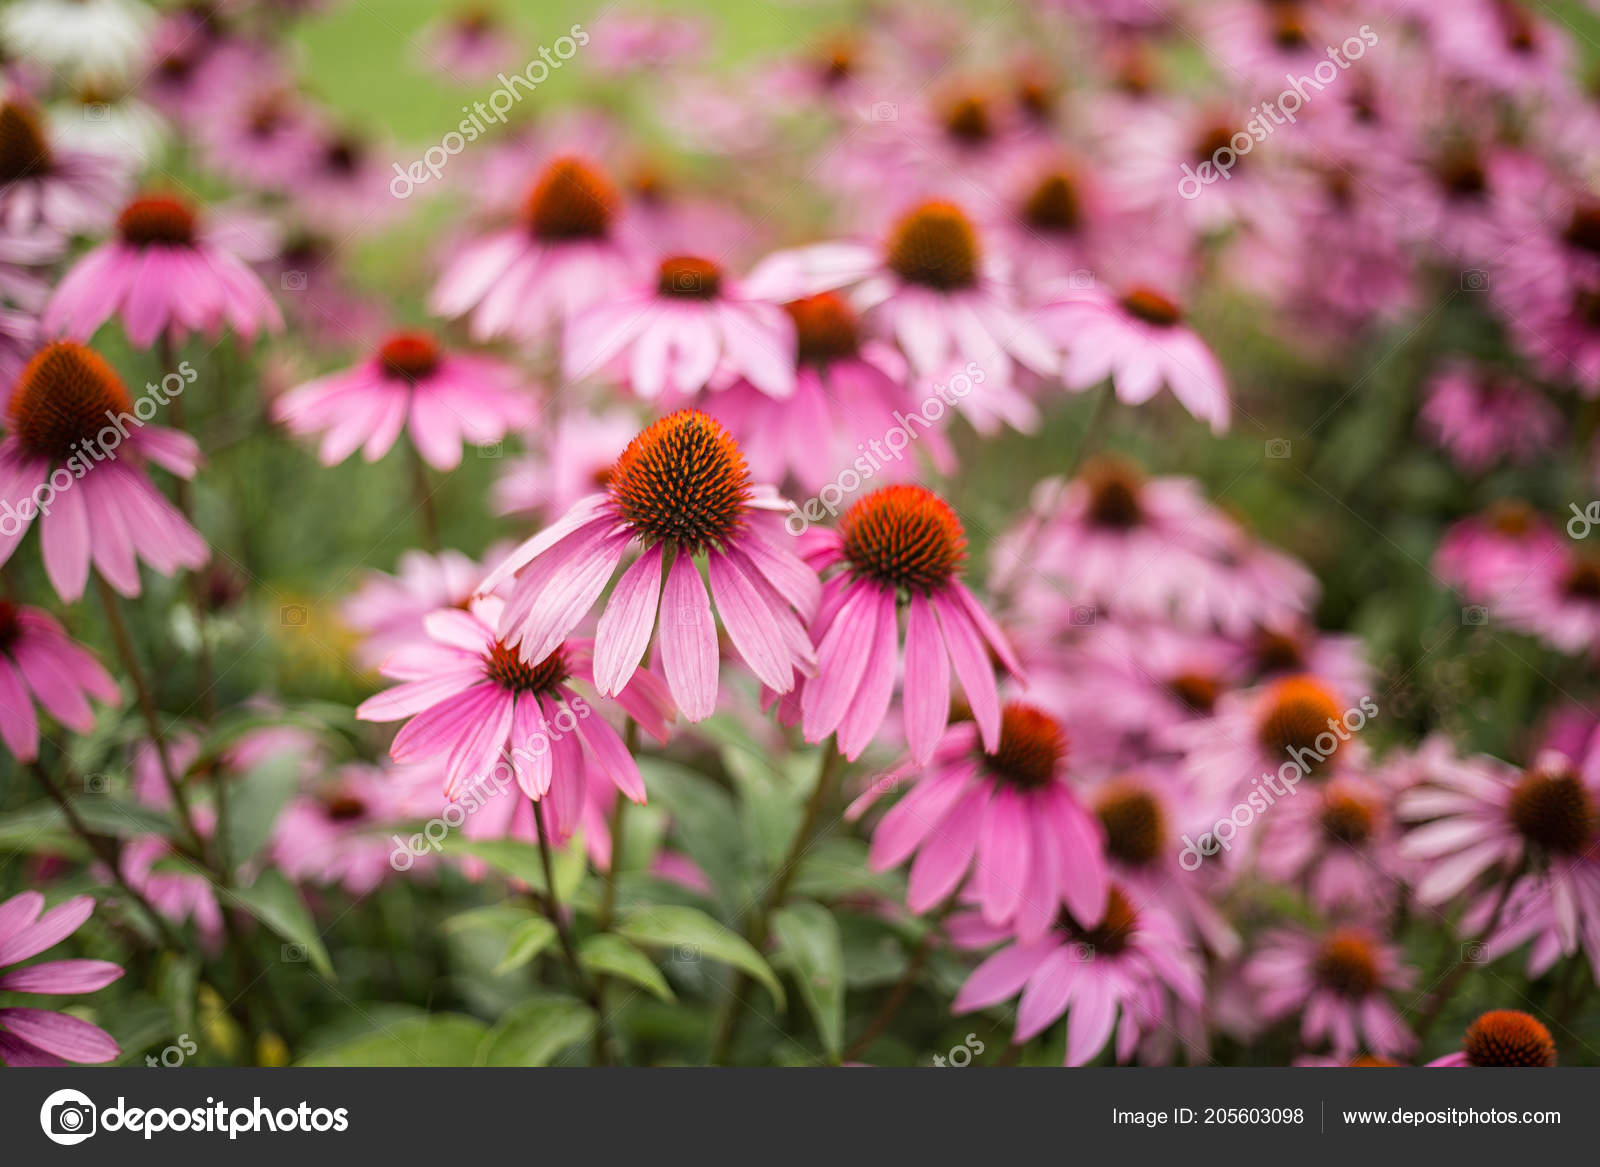 Pink flowers close beautiful bright flowers flower bed stock photo pink flowers close beautiful bright flowers flower bed stock photo izmirmasajfo